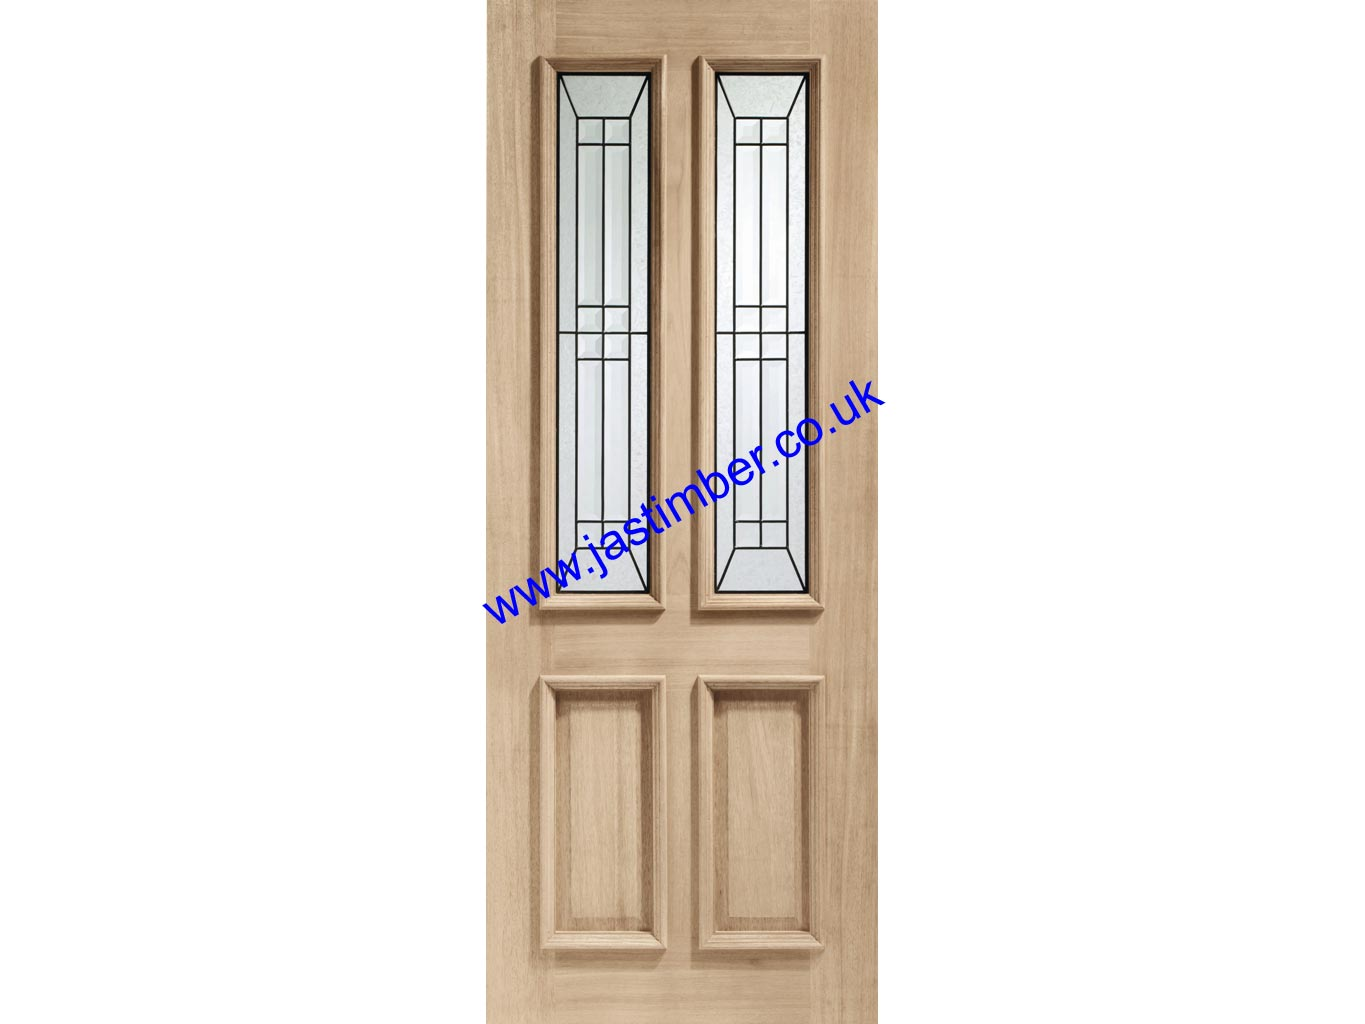 XL Malton Oak Triple-Glazed Diamond M&T Door